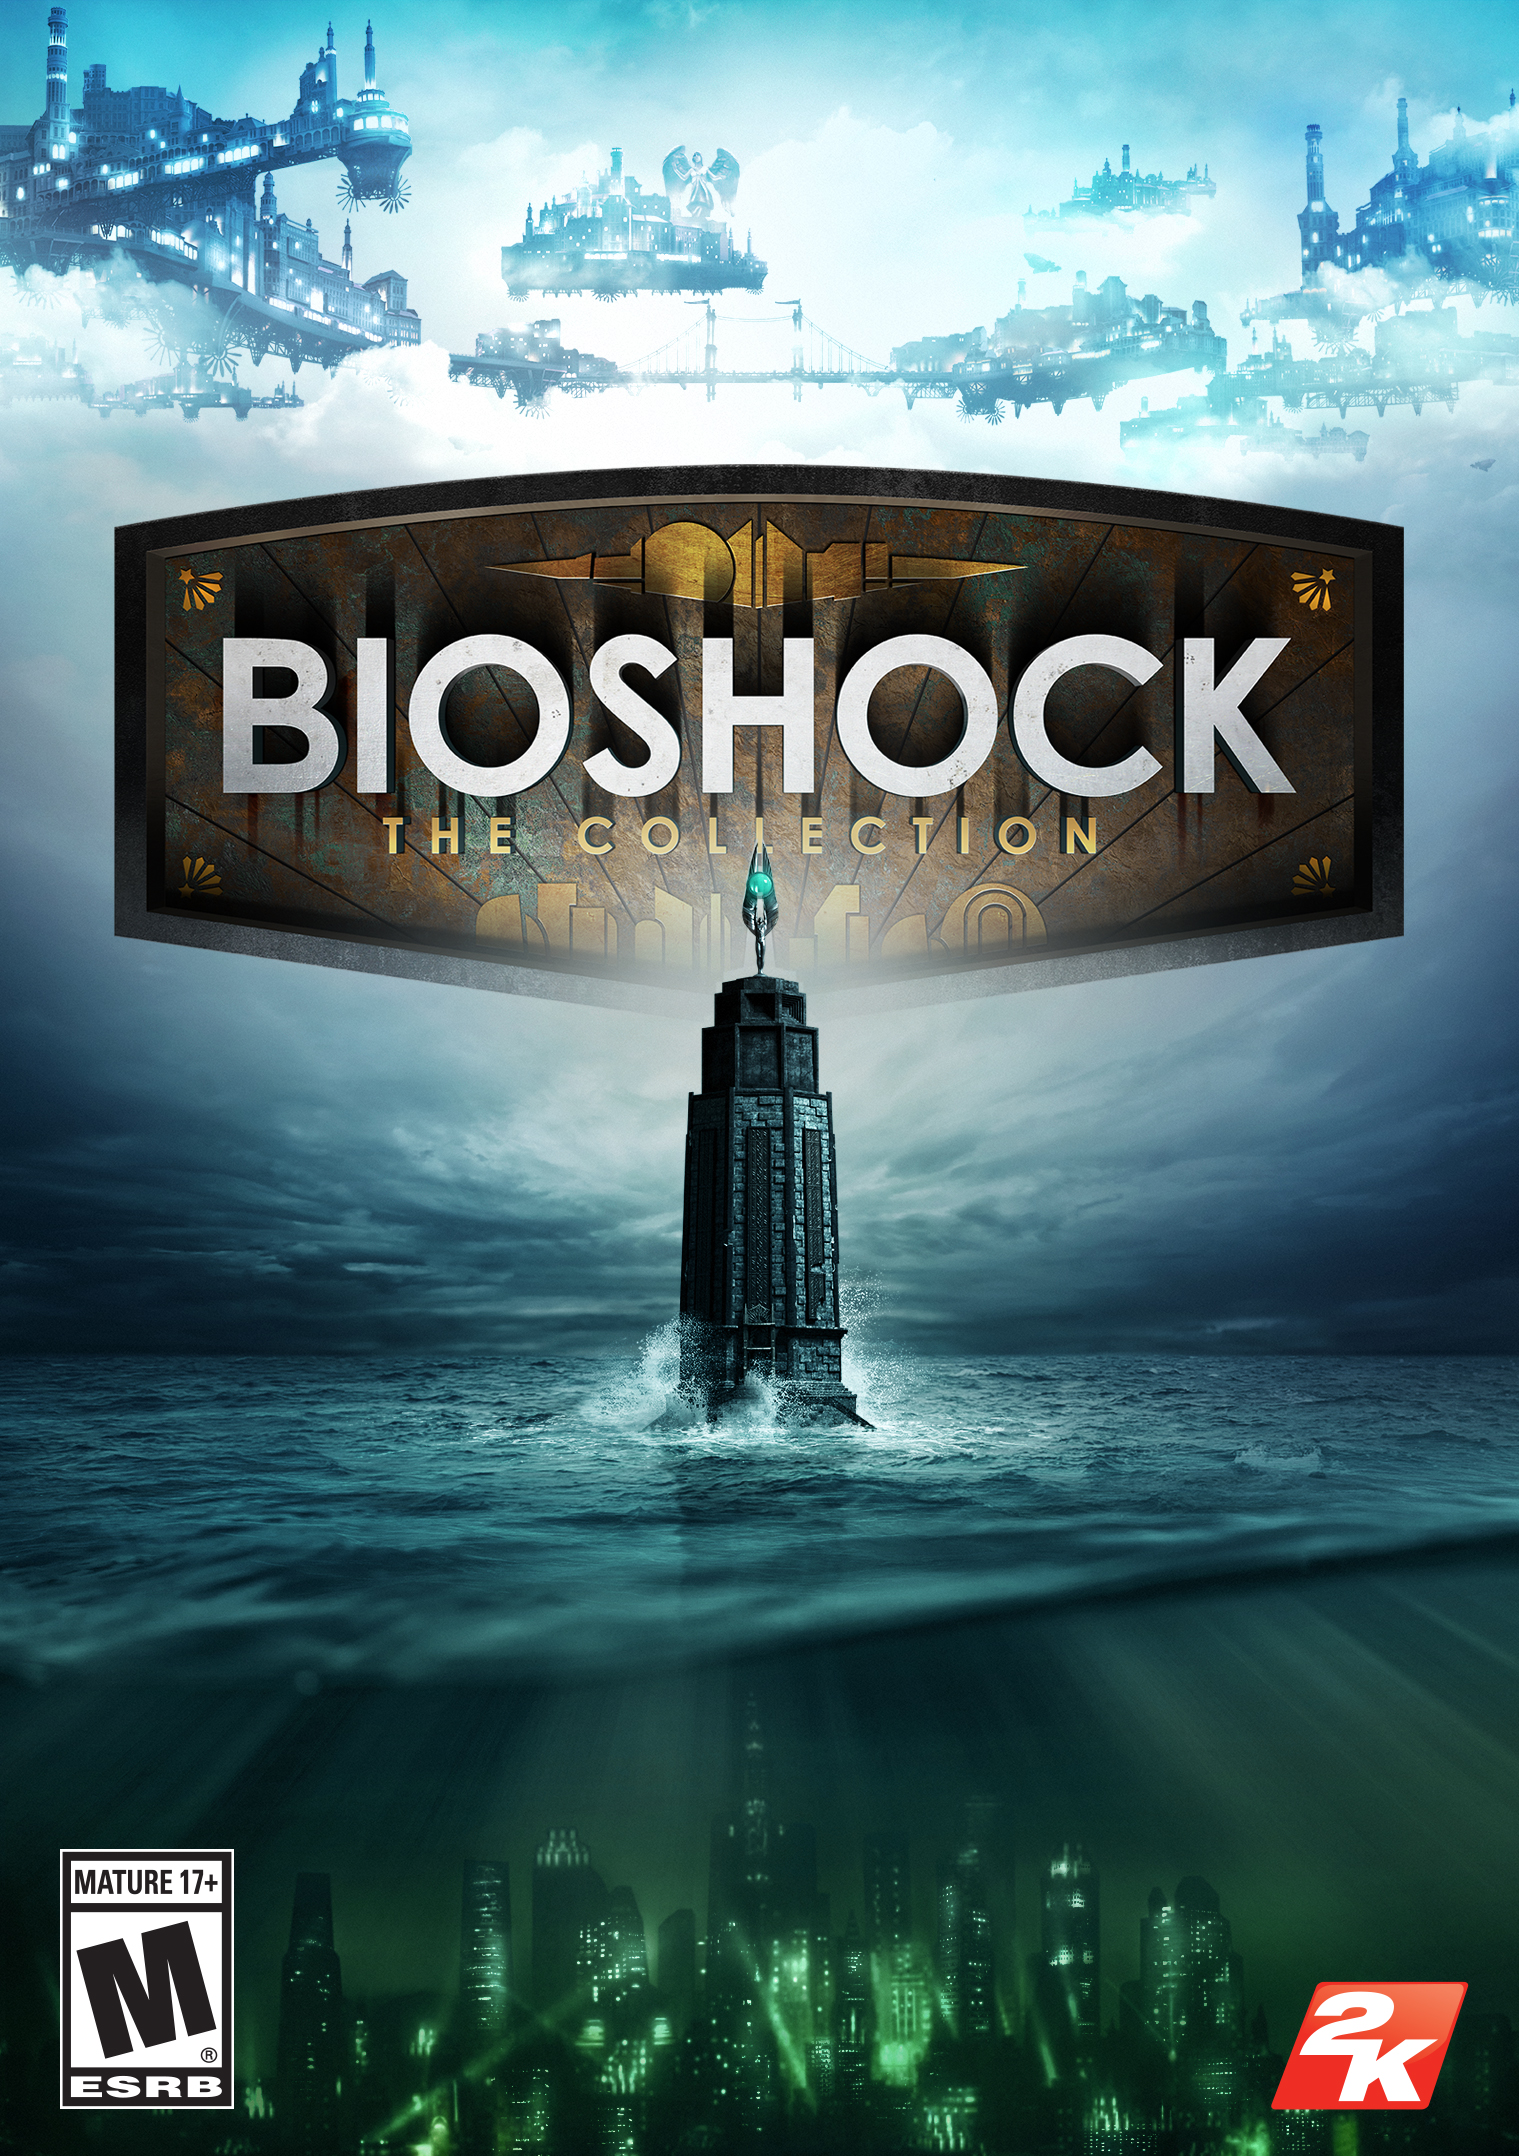 amazon com bioshock the collection playstation 4 2k games